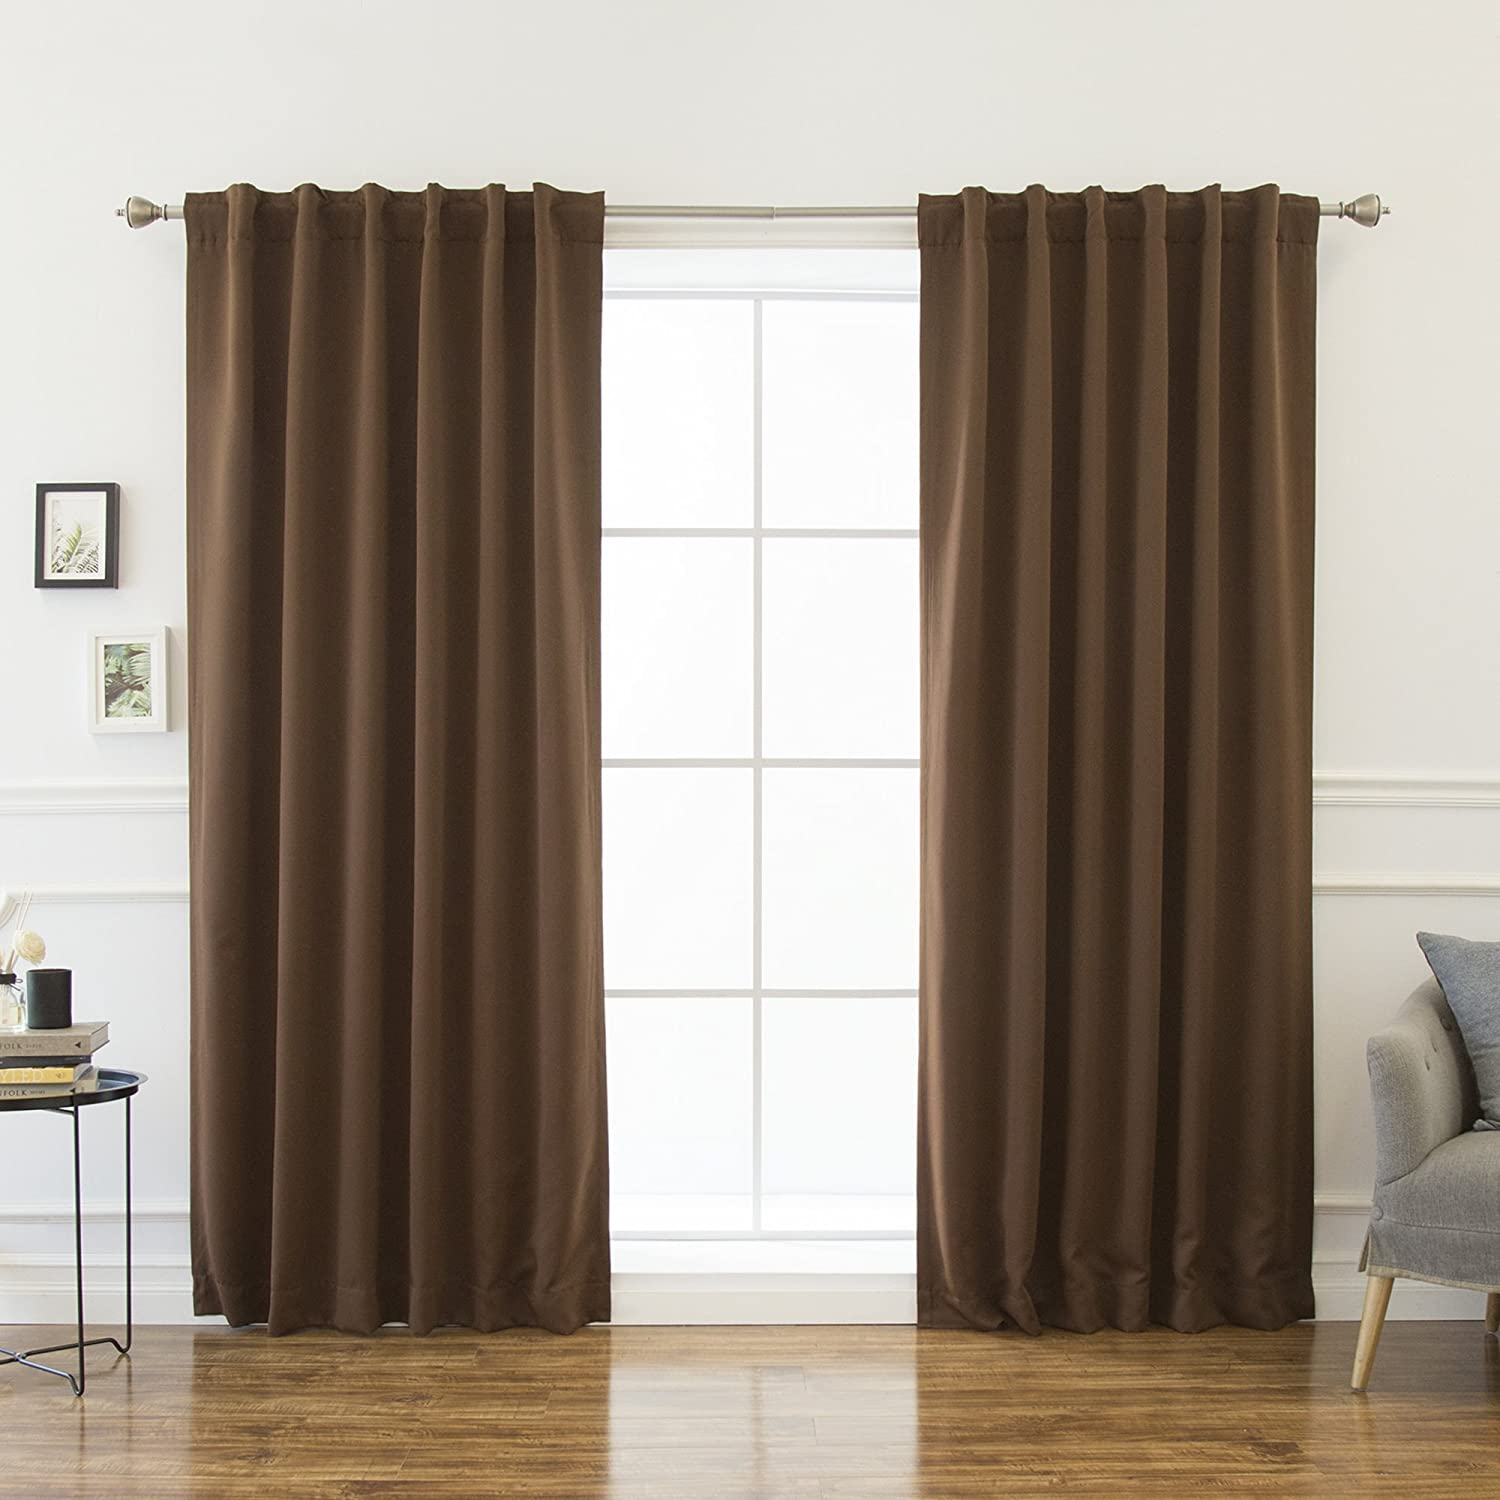 Best Home Fashion Thermal Insulated Blackout Curtains - Back Tab/ Rod Pocket - Chocolate